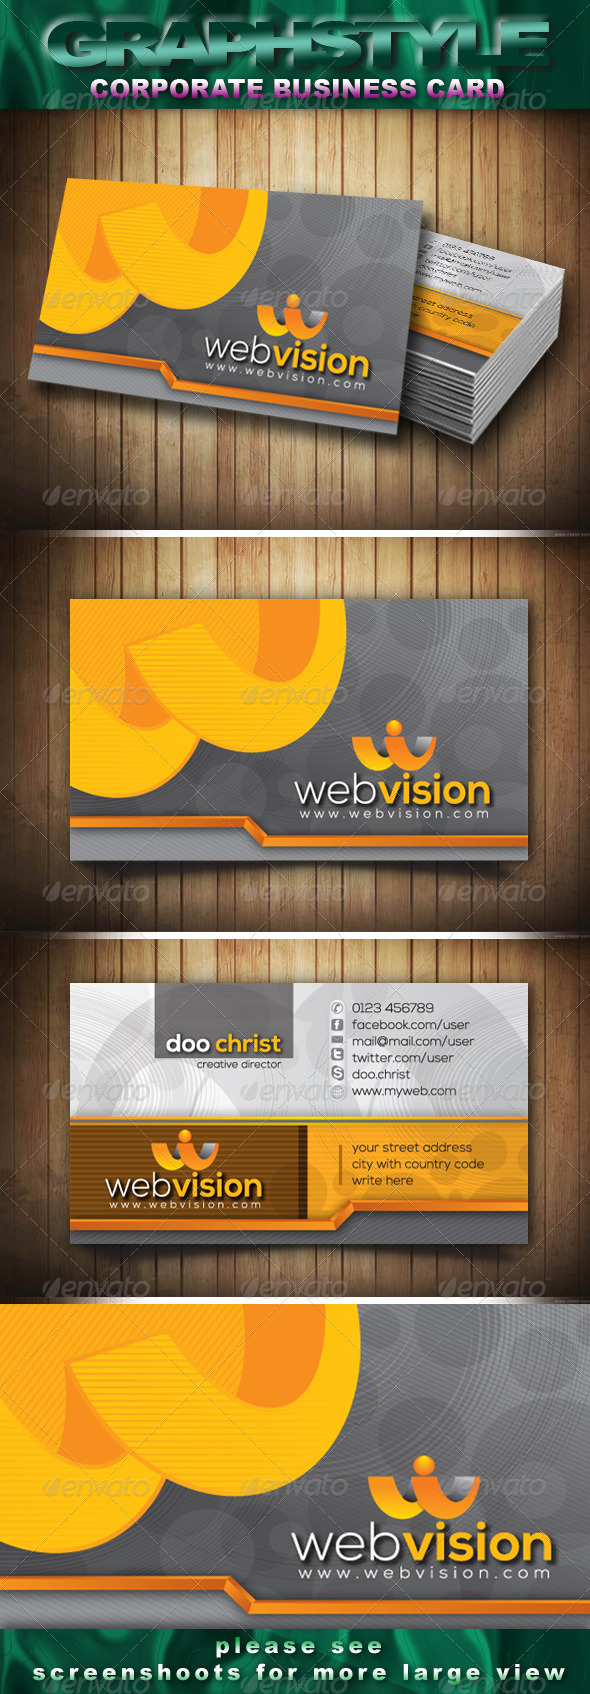 Webvision Corporate Business Card - Creative Business Cards